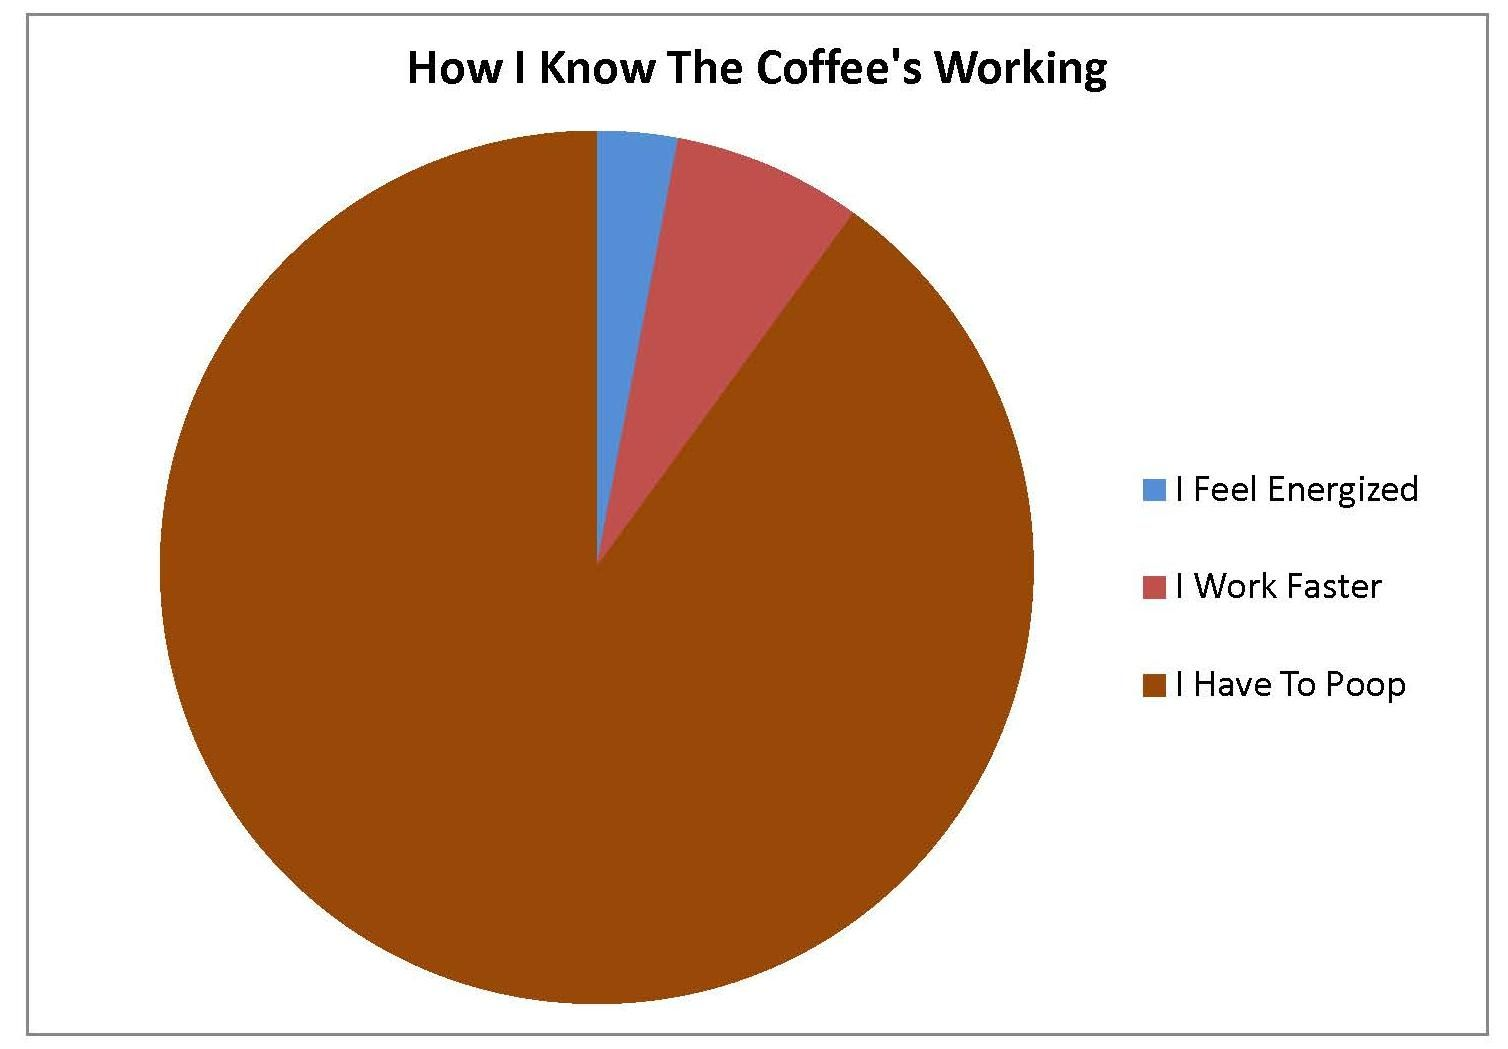 How i know the coffees working pie charts hilarious and funny farm pie charts are rarely used in the scientific community and the less effective than linebar charts smaller fractions in the pie chart may be difficult to geenschuldenfo Gallery